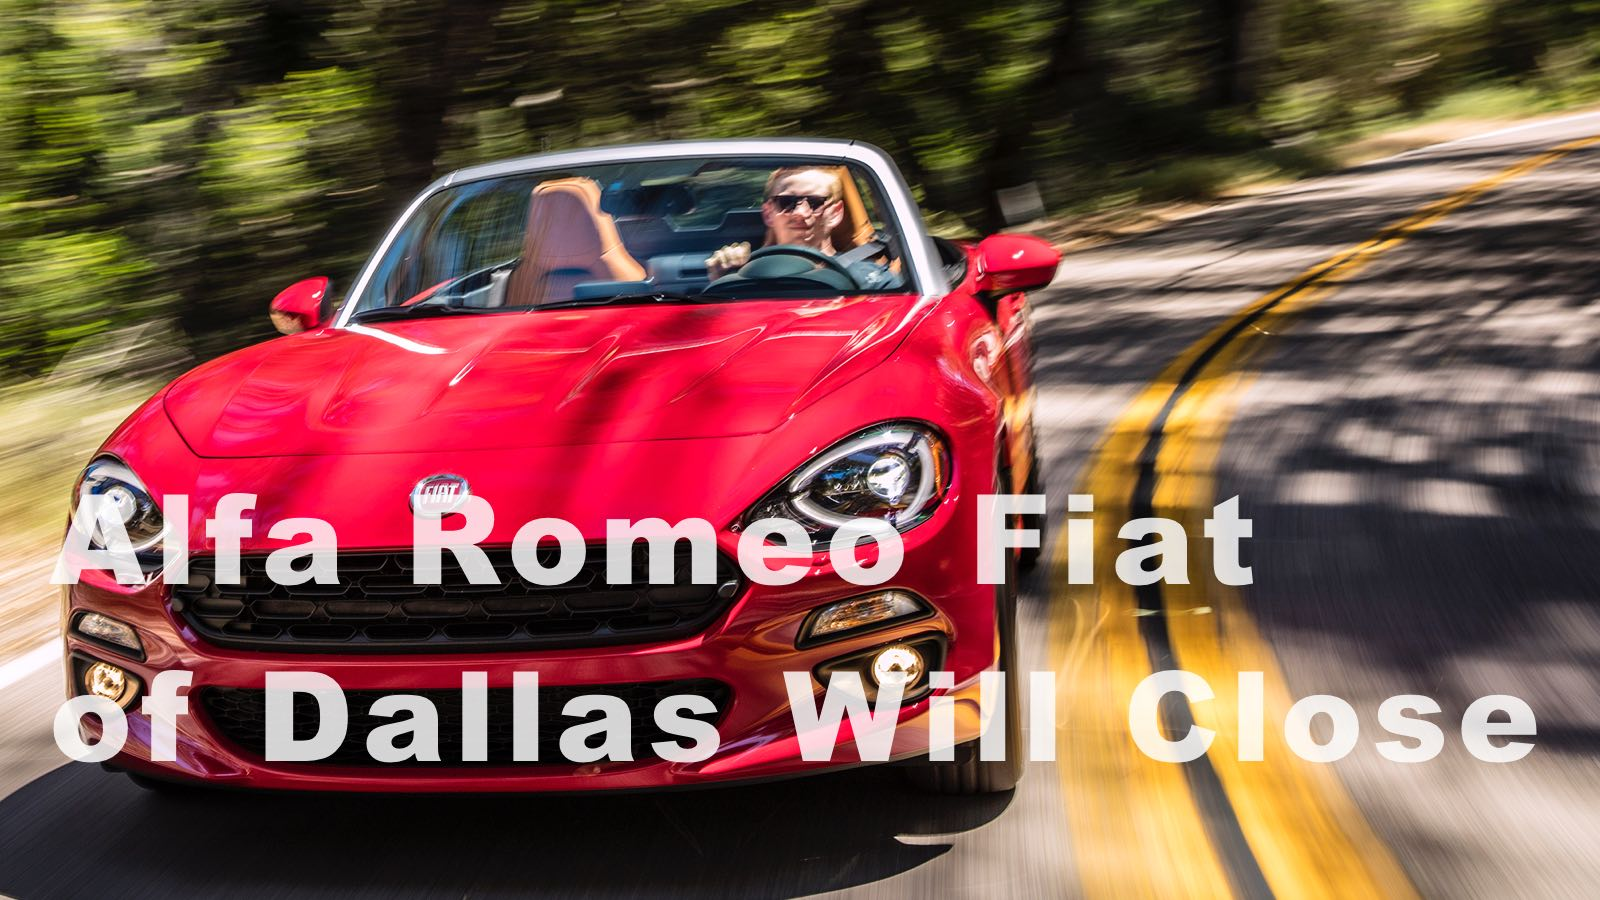 Alfa Romeo Fiat Of Dallas Will Close And We Channel